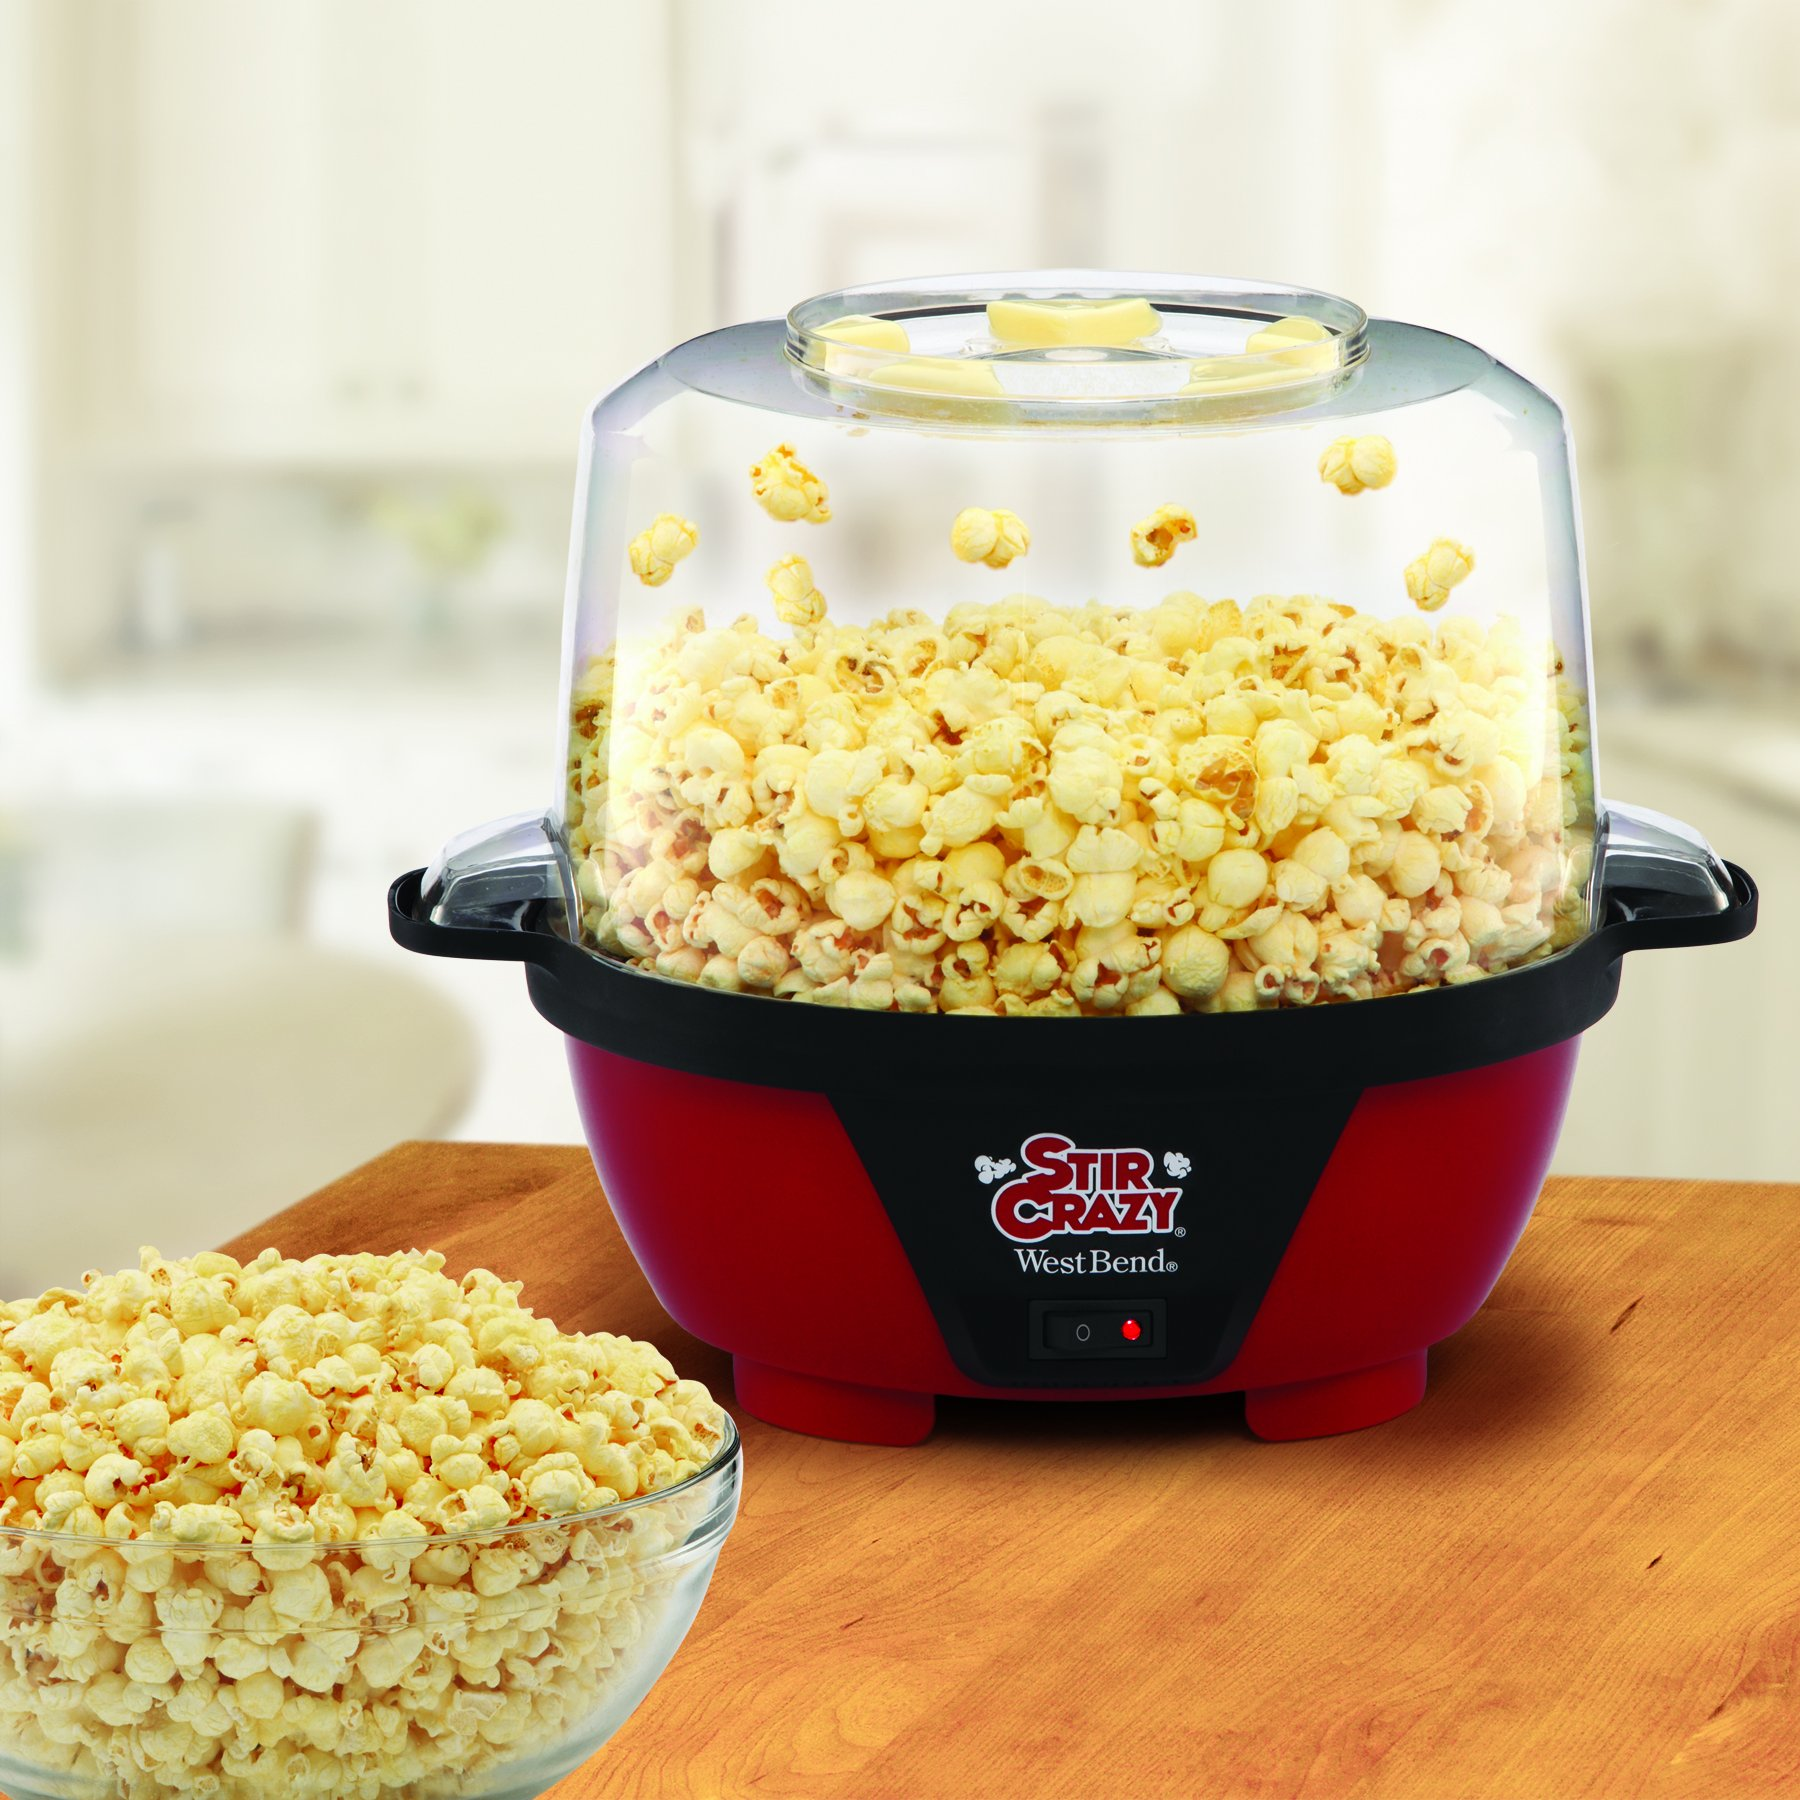 West Bend 82505 Stir Crazy Electric Hot Oil Popcorn Popper Machine with Stirring Rod Offers Large Lid for Serving Bowl and Convenient Storage, 6-Quarts, Red by West Bend (Image #3)